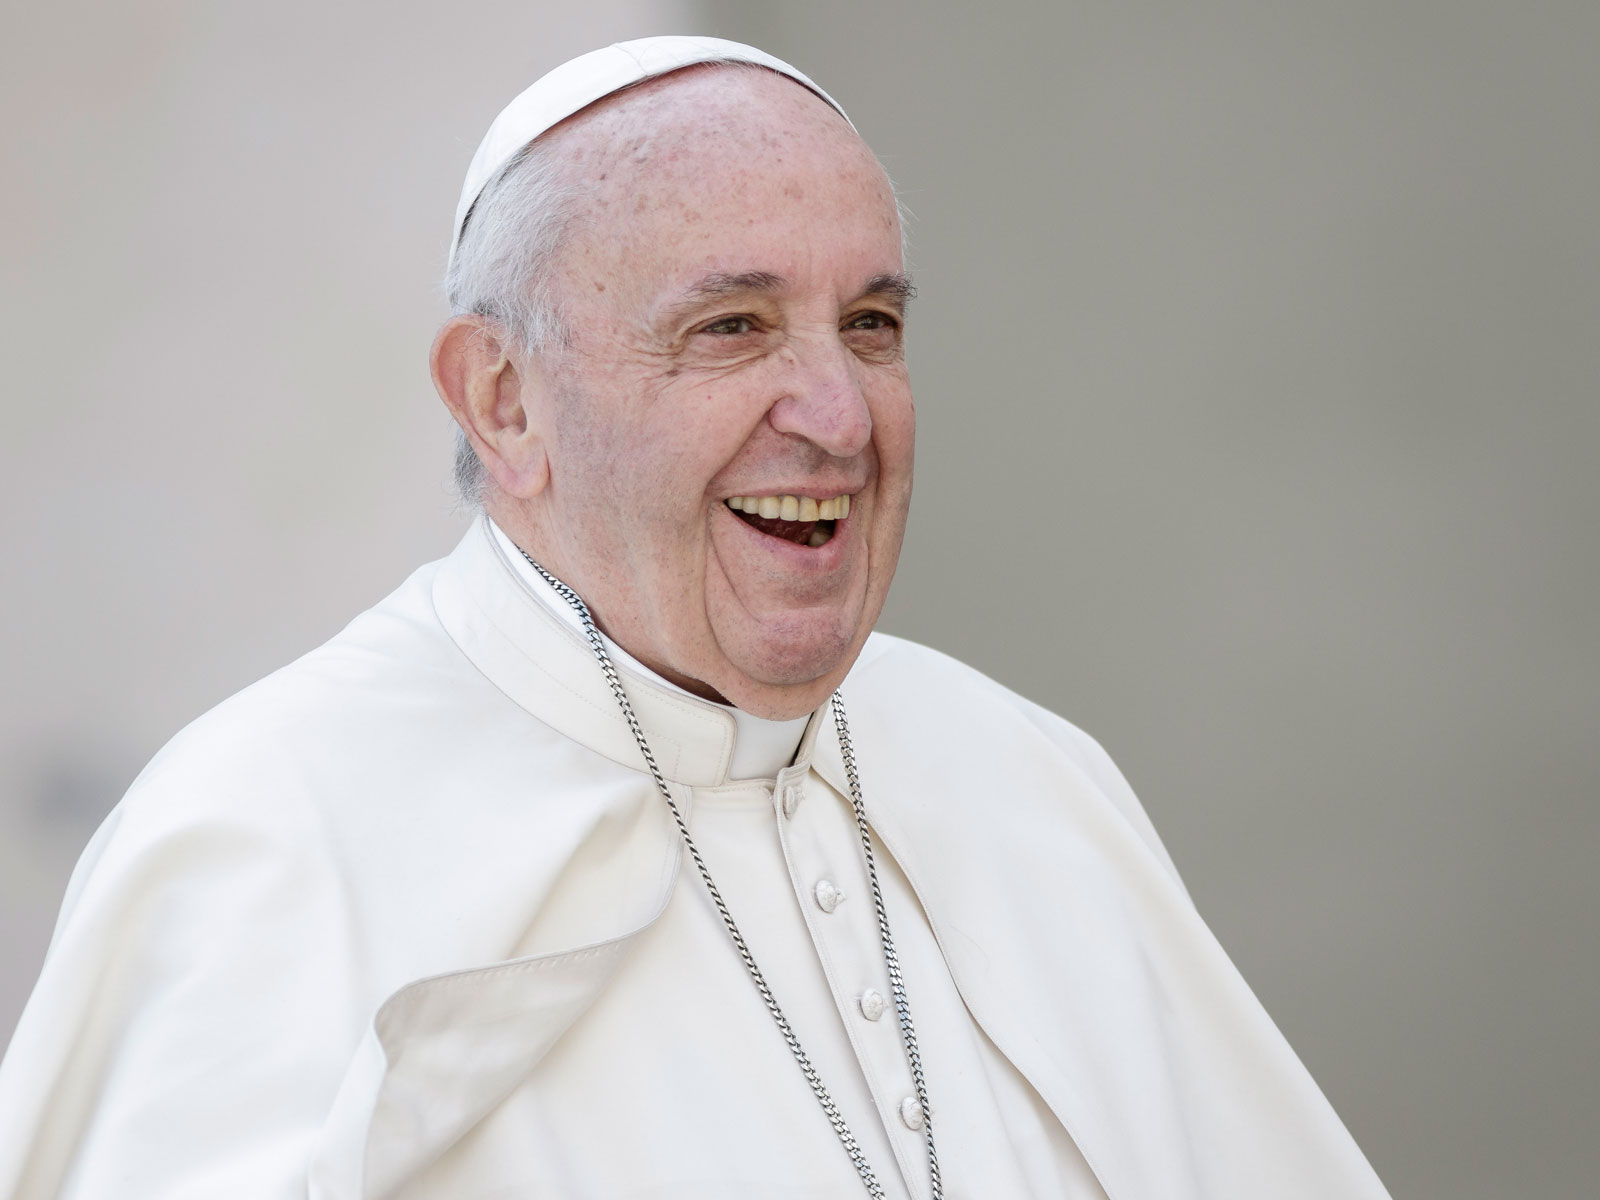 Pope Francis Calls Pappy Van Winkle 'Very Good Bourbon'